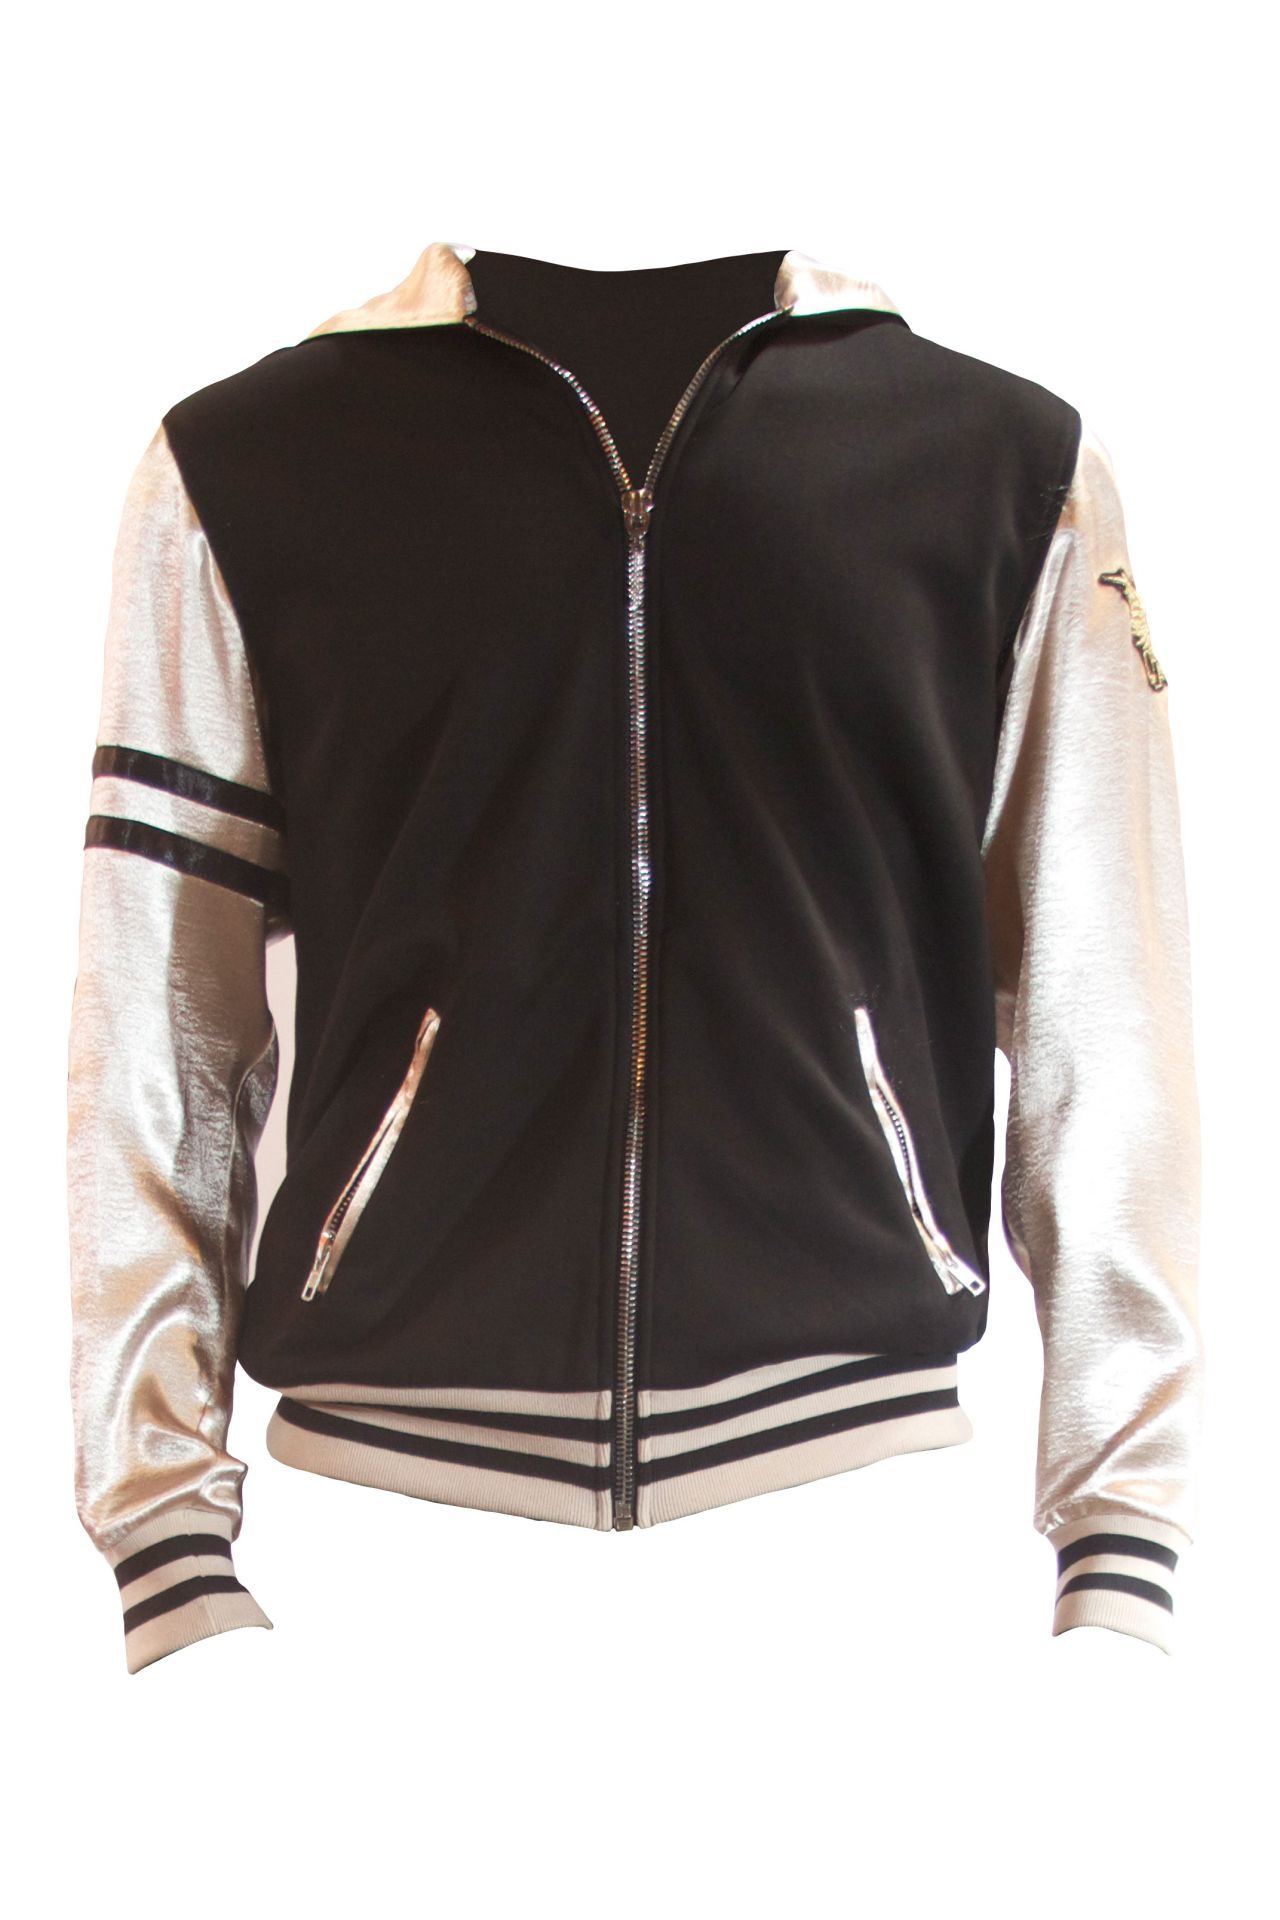 CLASSIC TRACK JACKET IN BLACK AND GOLD WITH CHIEF